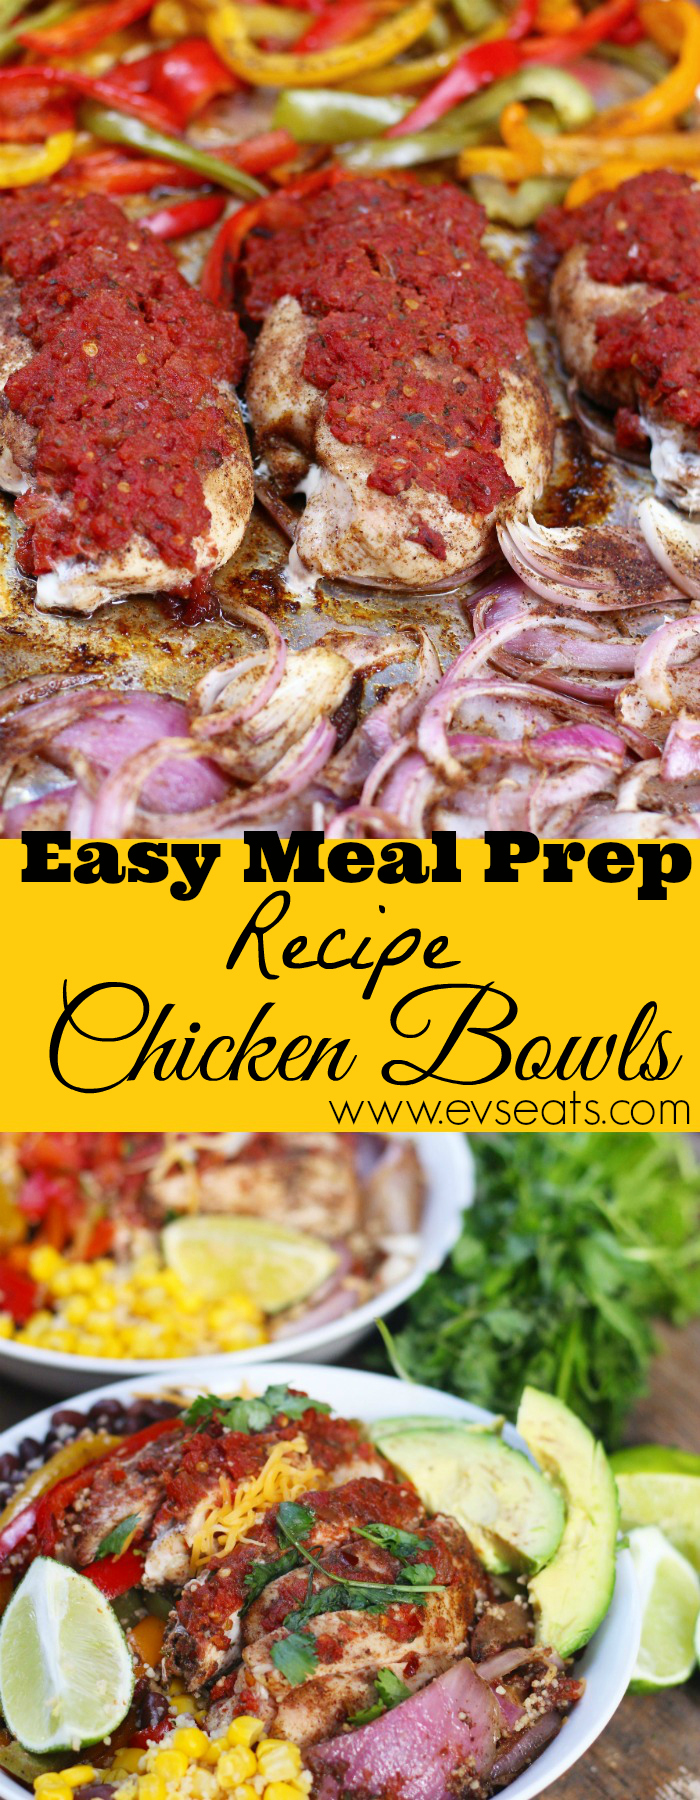 Meal prep made easy with Reynolds Heat and Eat Containers , and an easy chicken bowl recipe with fajita peppers and couscous made all in one pan!